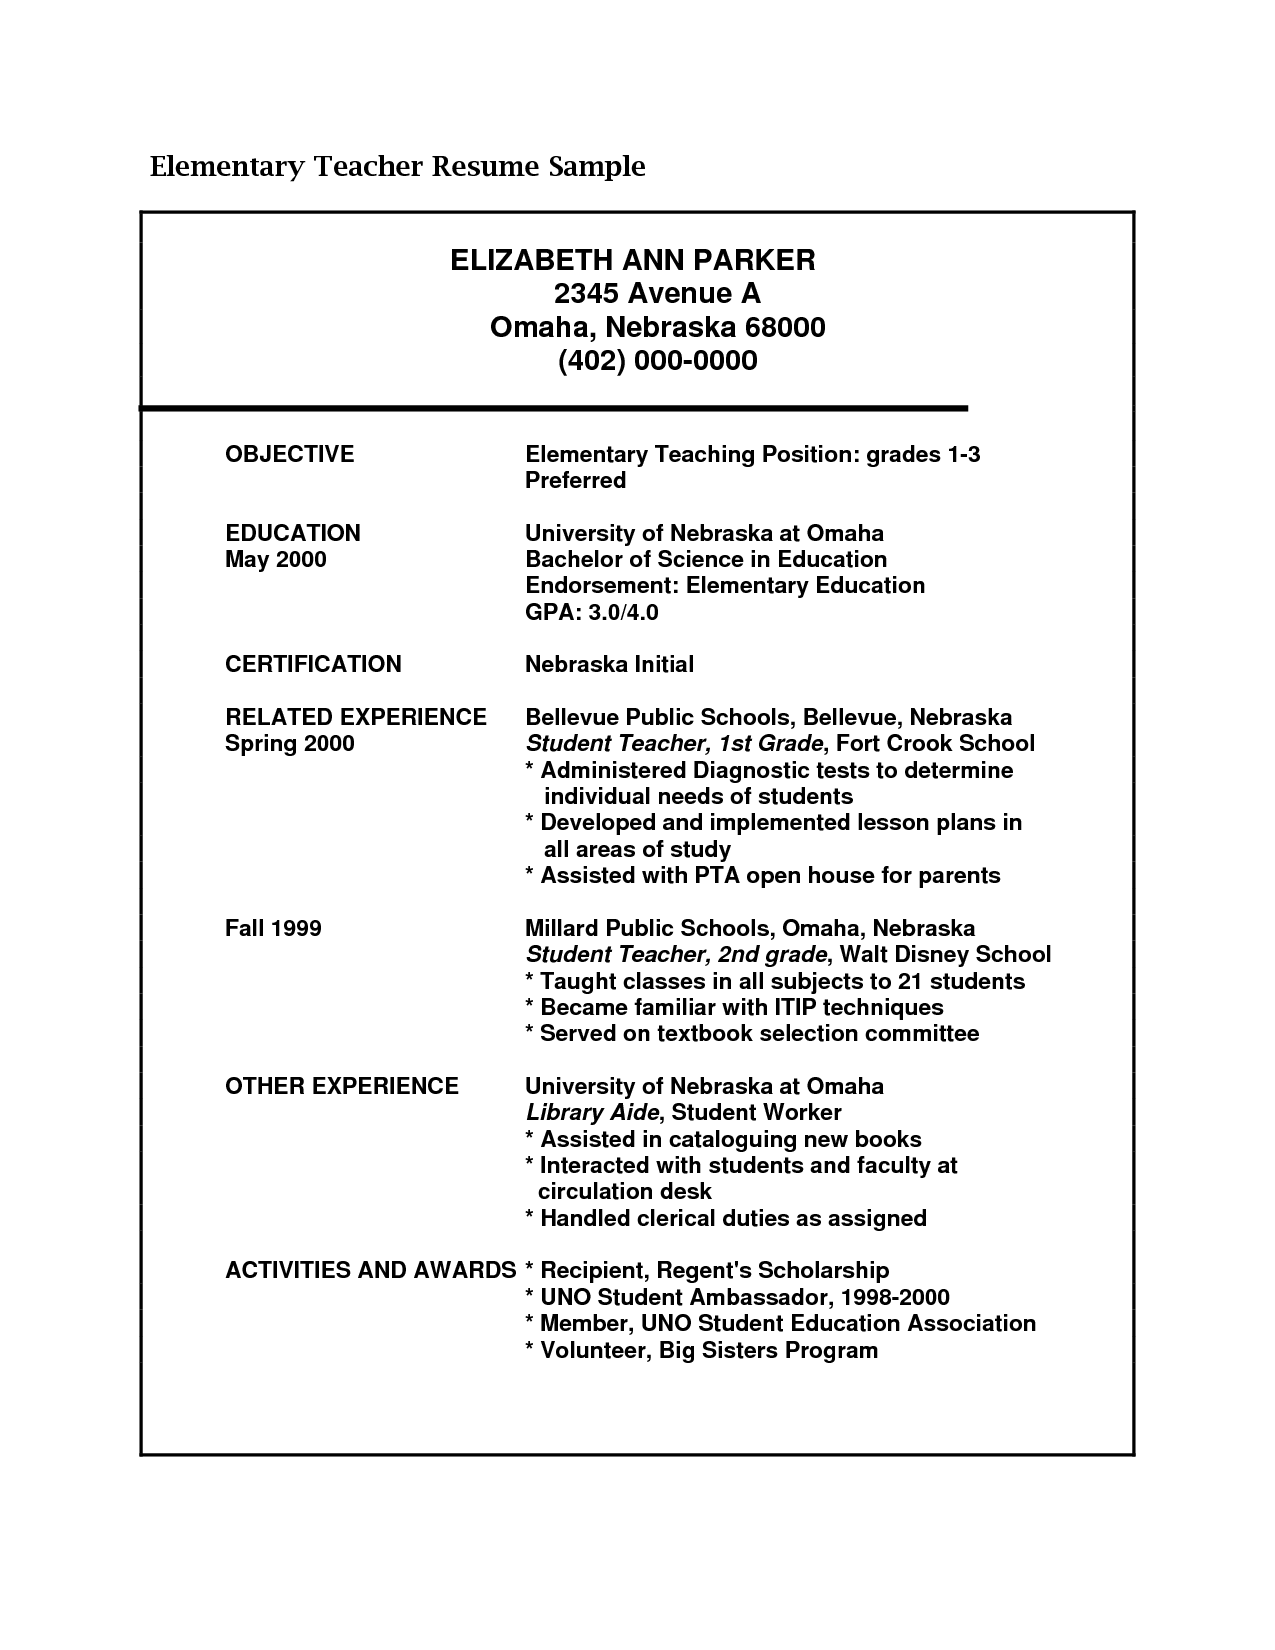 admin teacher resume examples elementary teacher resume examples cv for teachers teachers professional reacutesumeacutes works education professionals to create dynamic job applications and prepare for interview